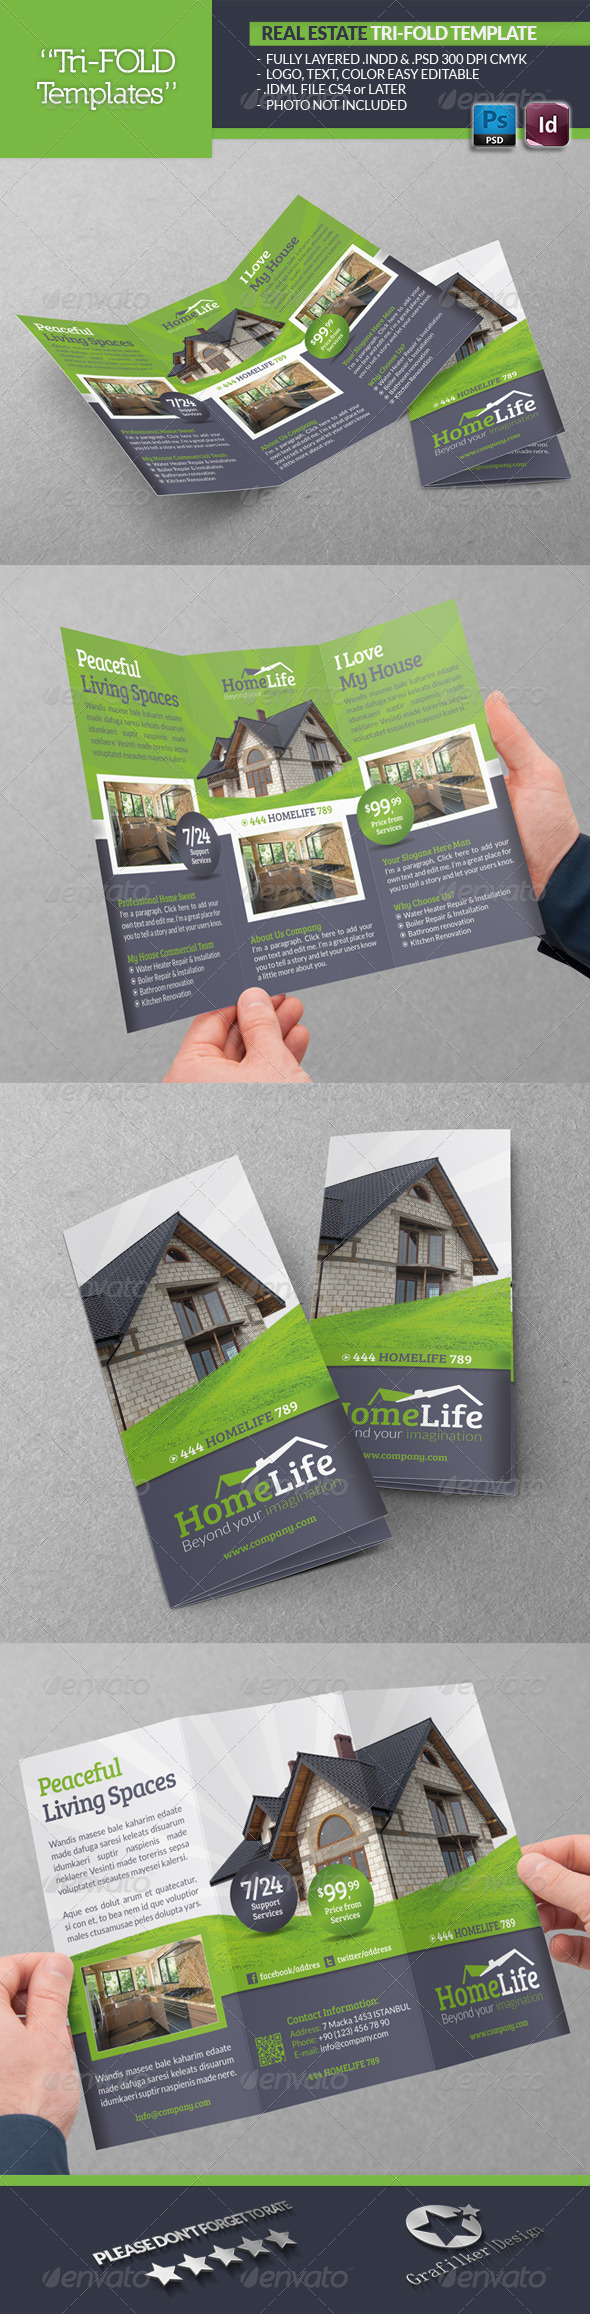 GraphicRiver Real Estate Tri-Fold Template 5208347